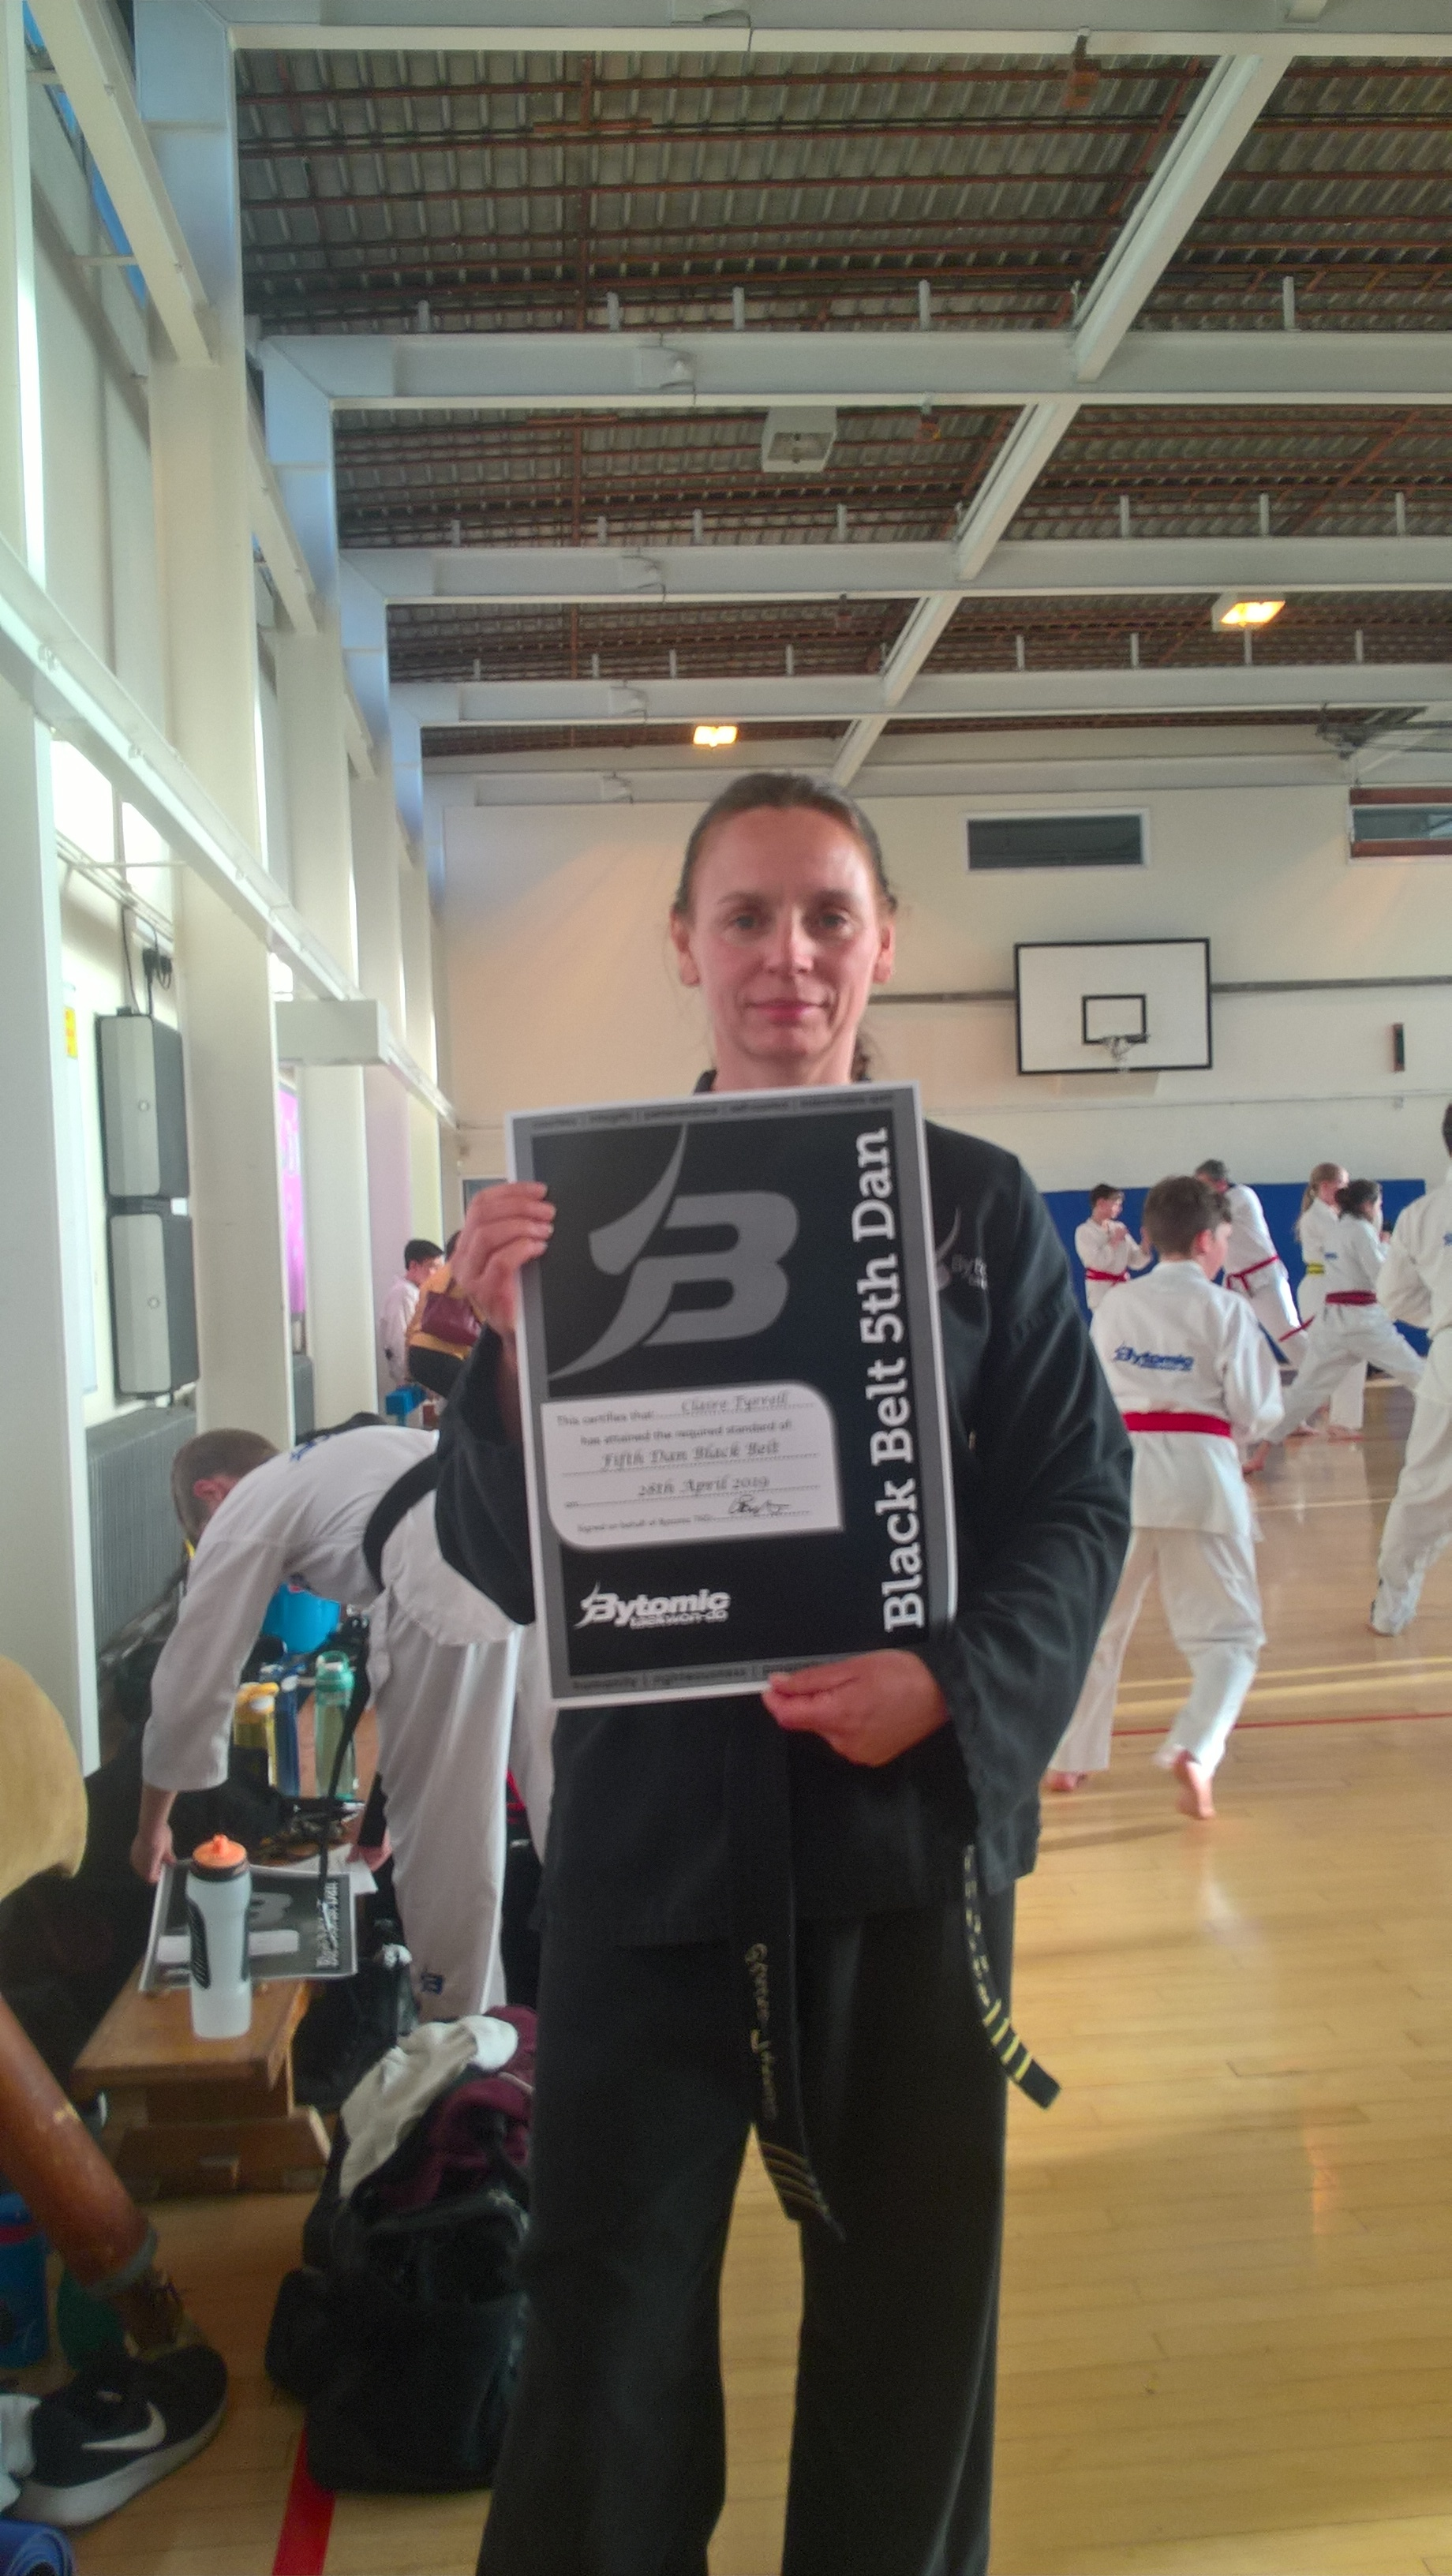 Claire Tyrrell - Promoted to 5th Dan Black Belt